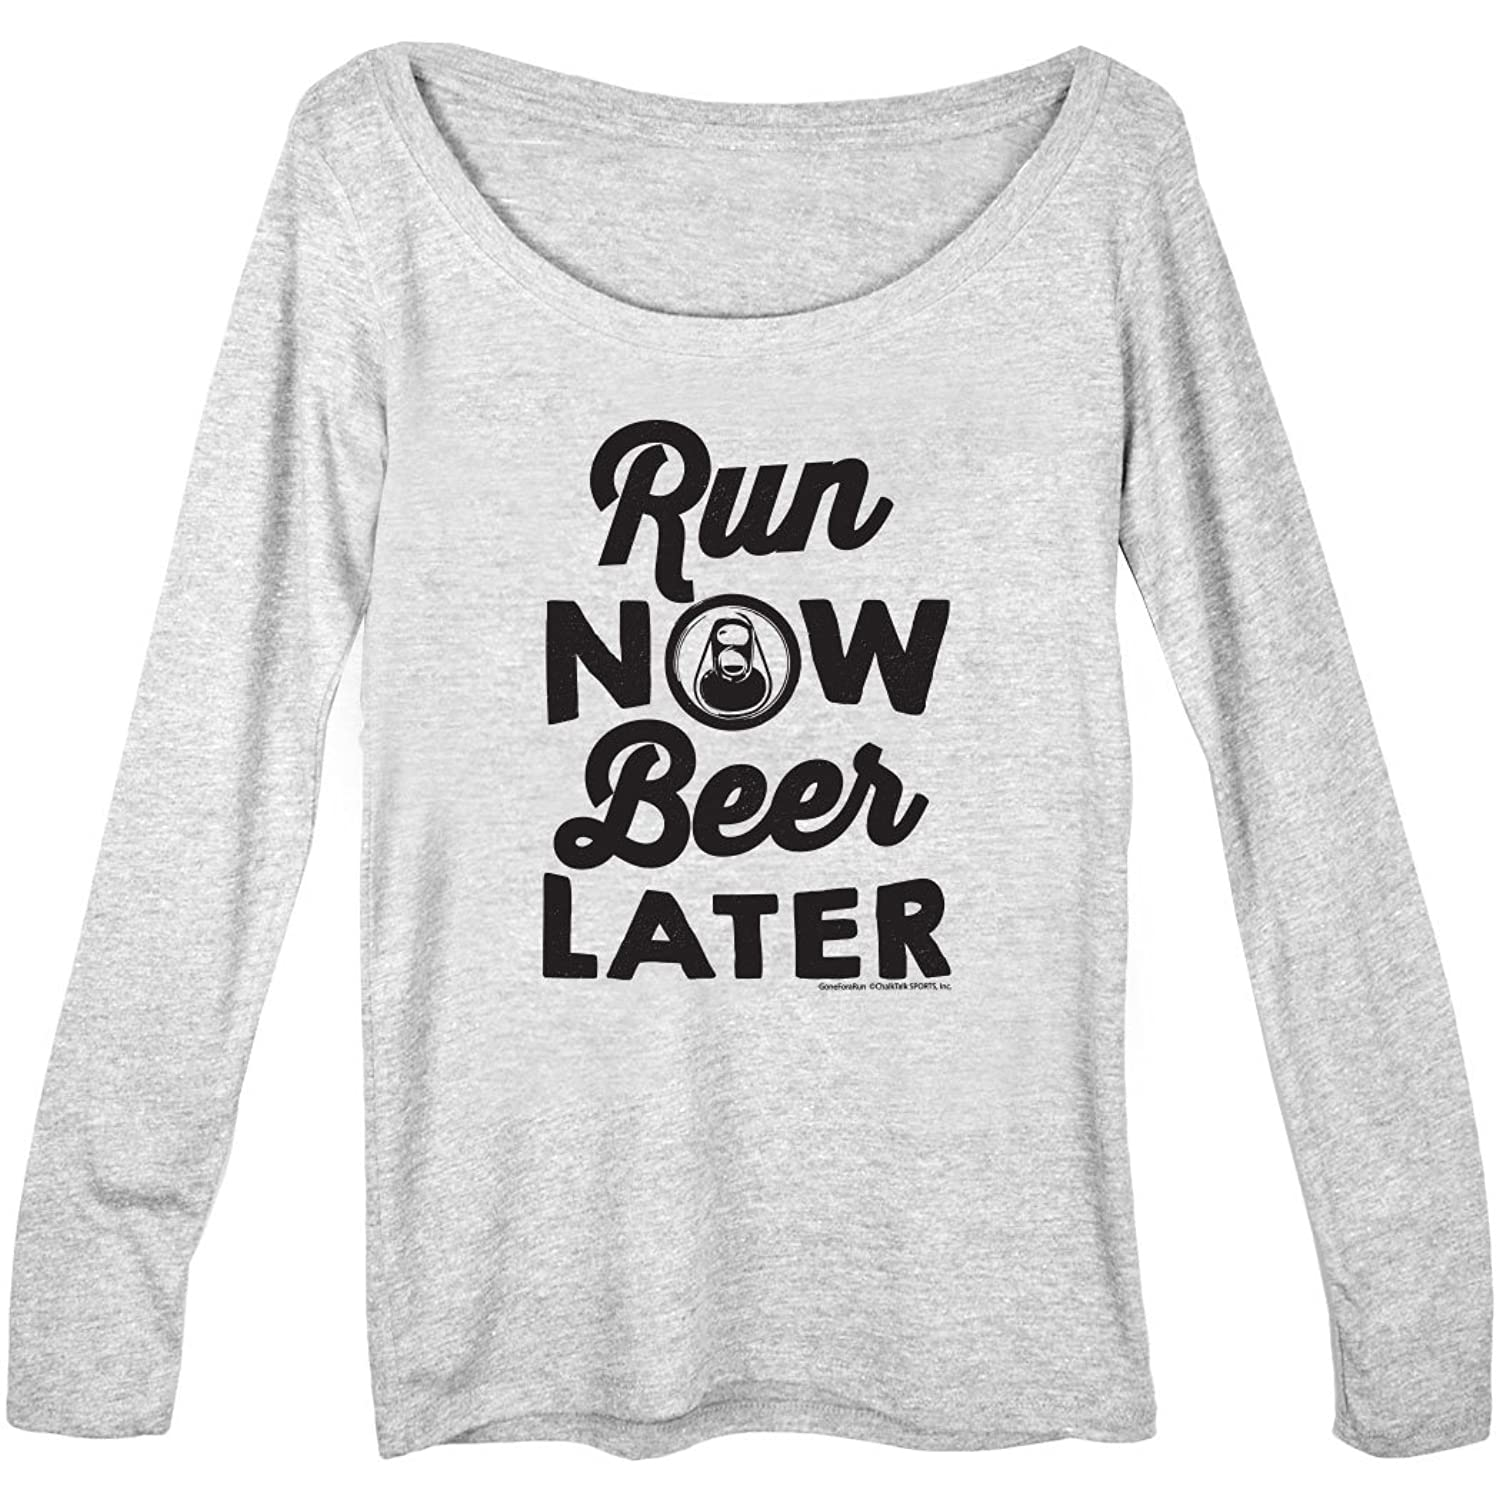 Women's Runner Scoop Neck Long Sleeve Tee Run Club Run Now Beer Later